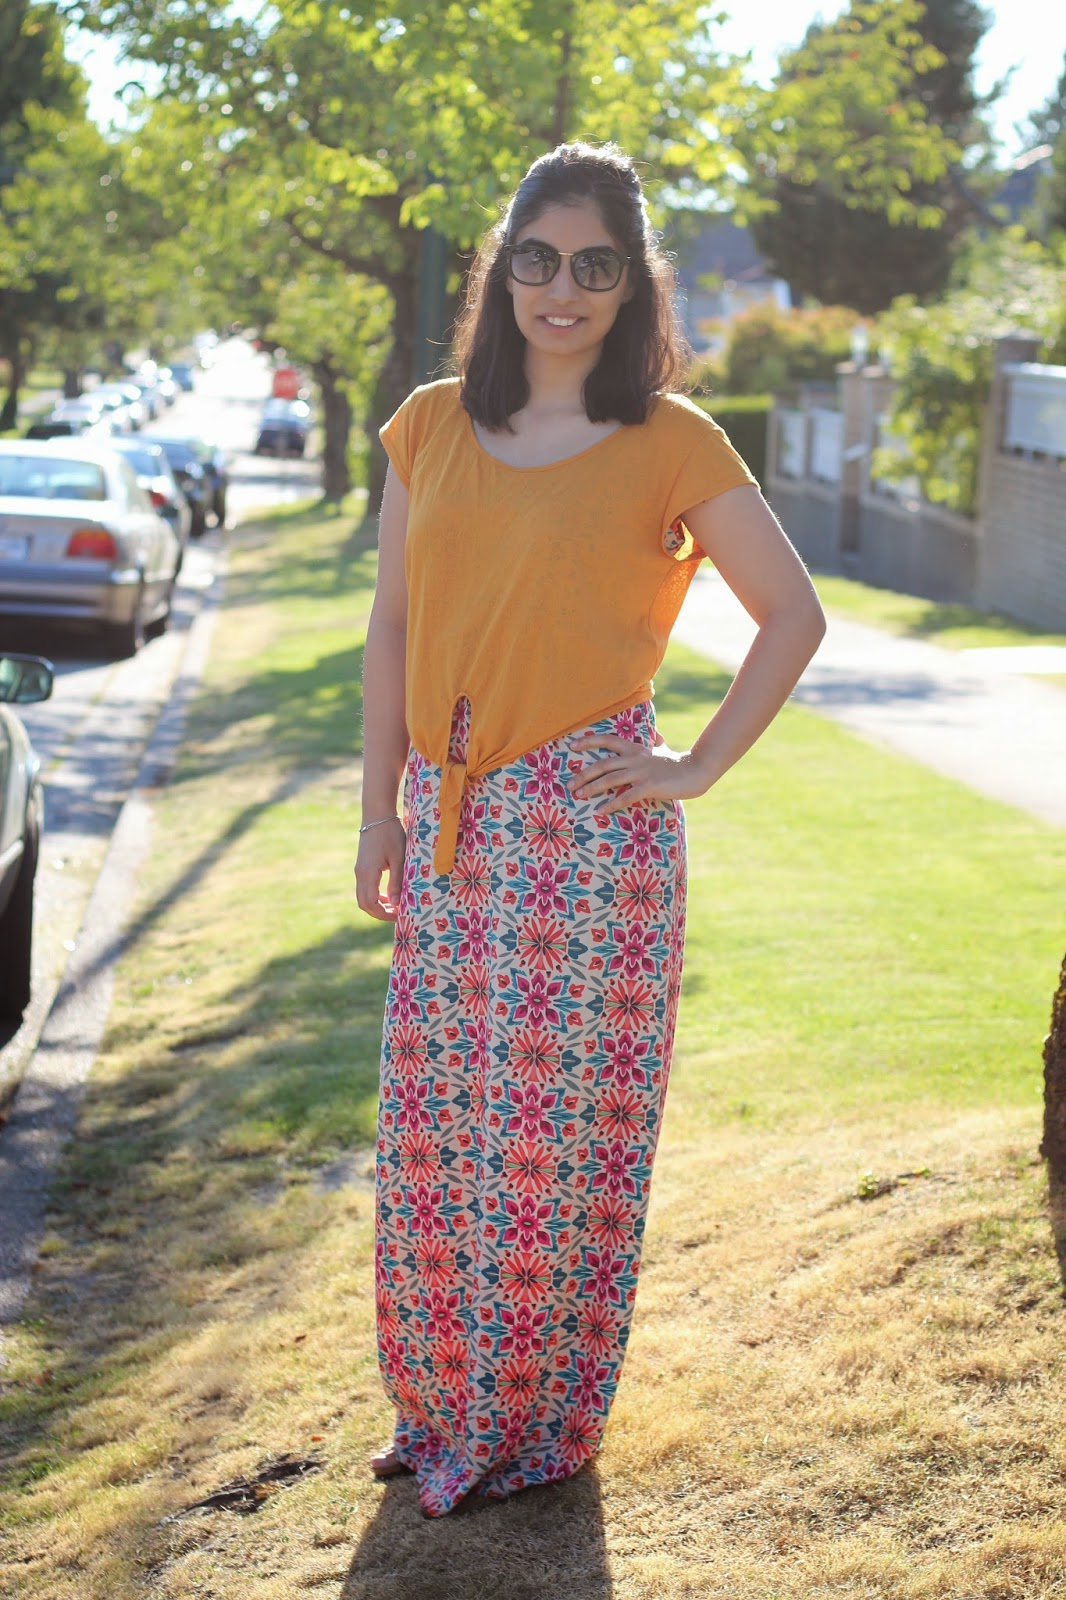 3 ways to wear a maxi dress - maxi dress with crop top